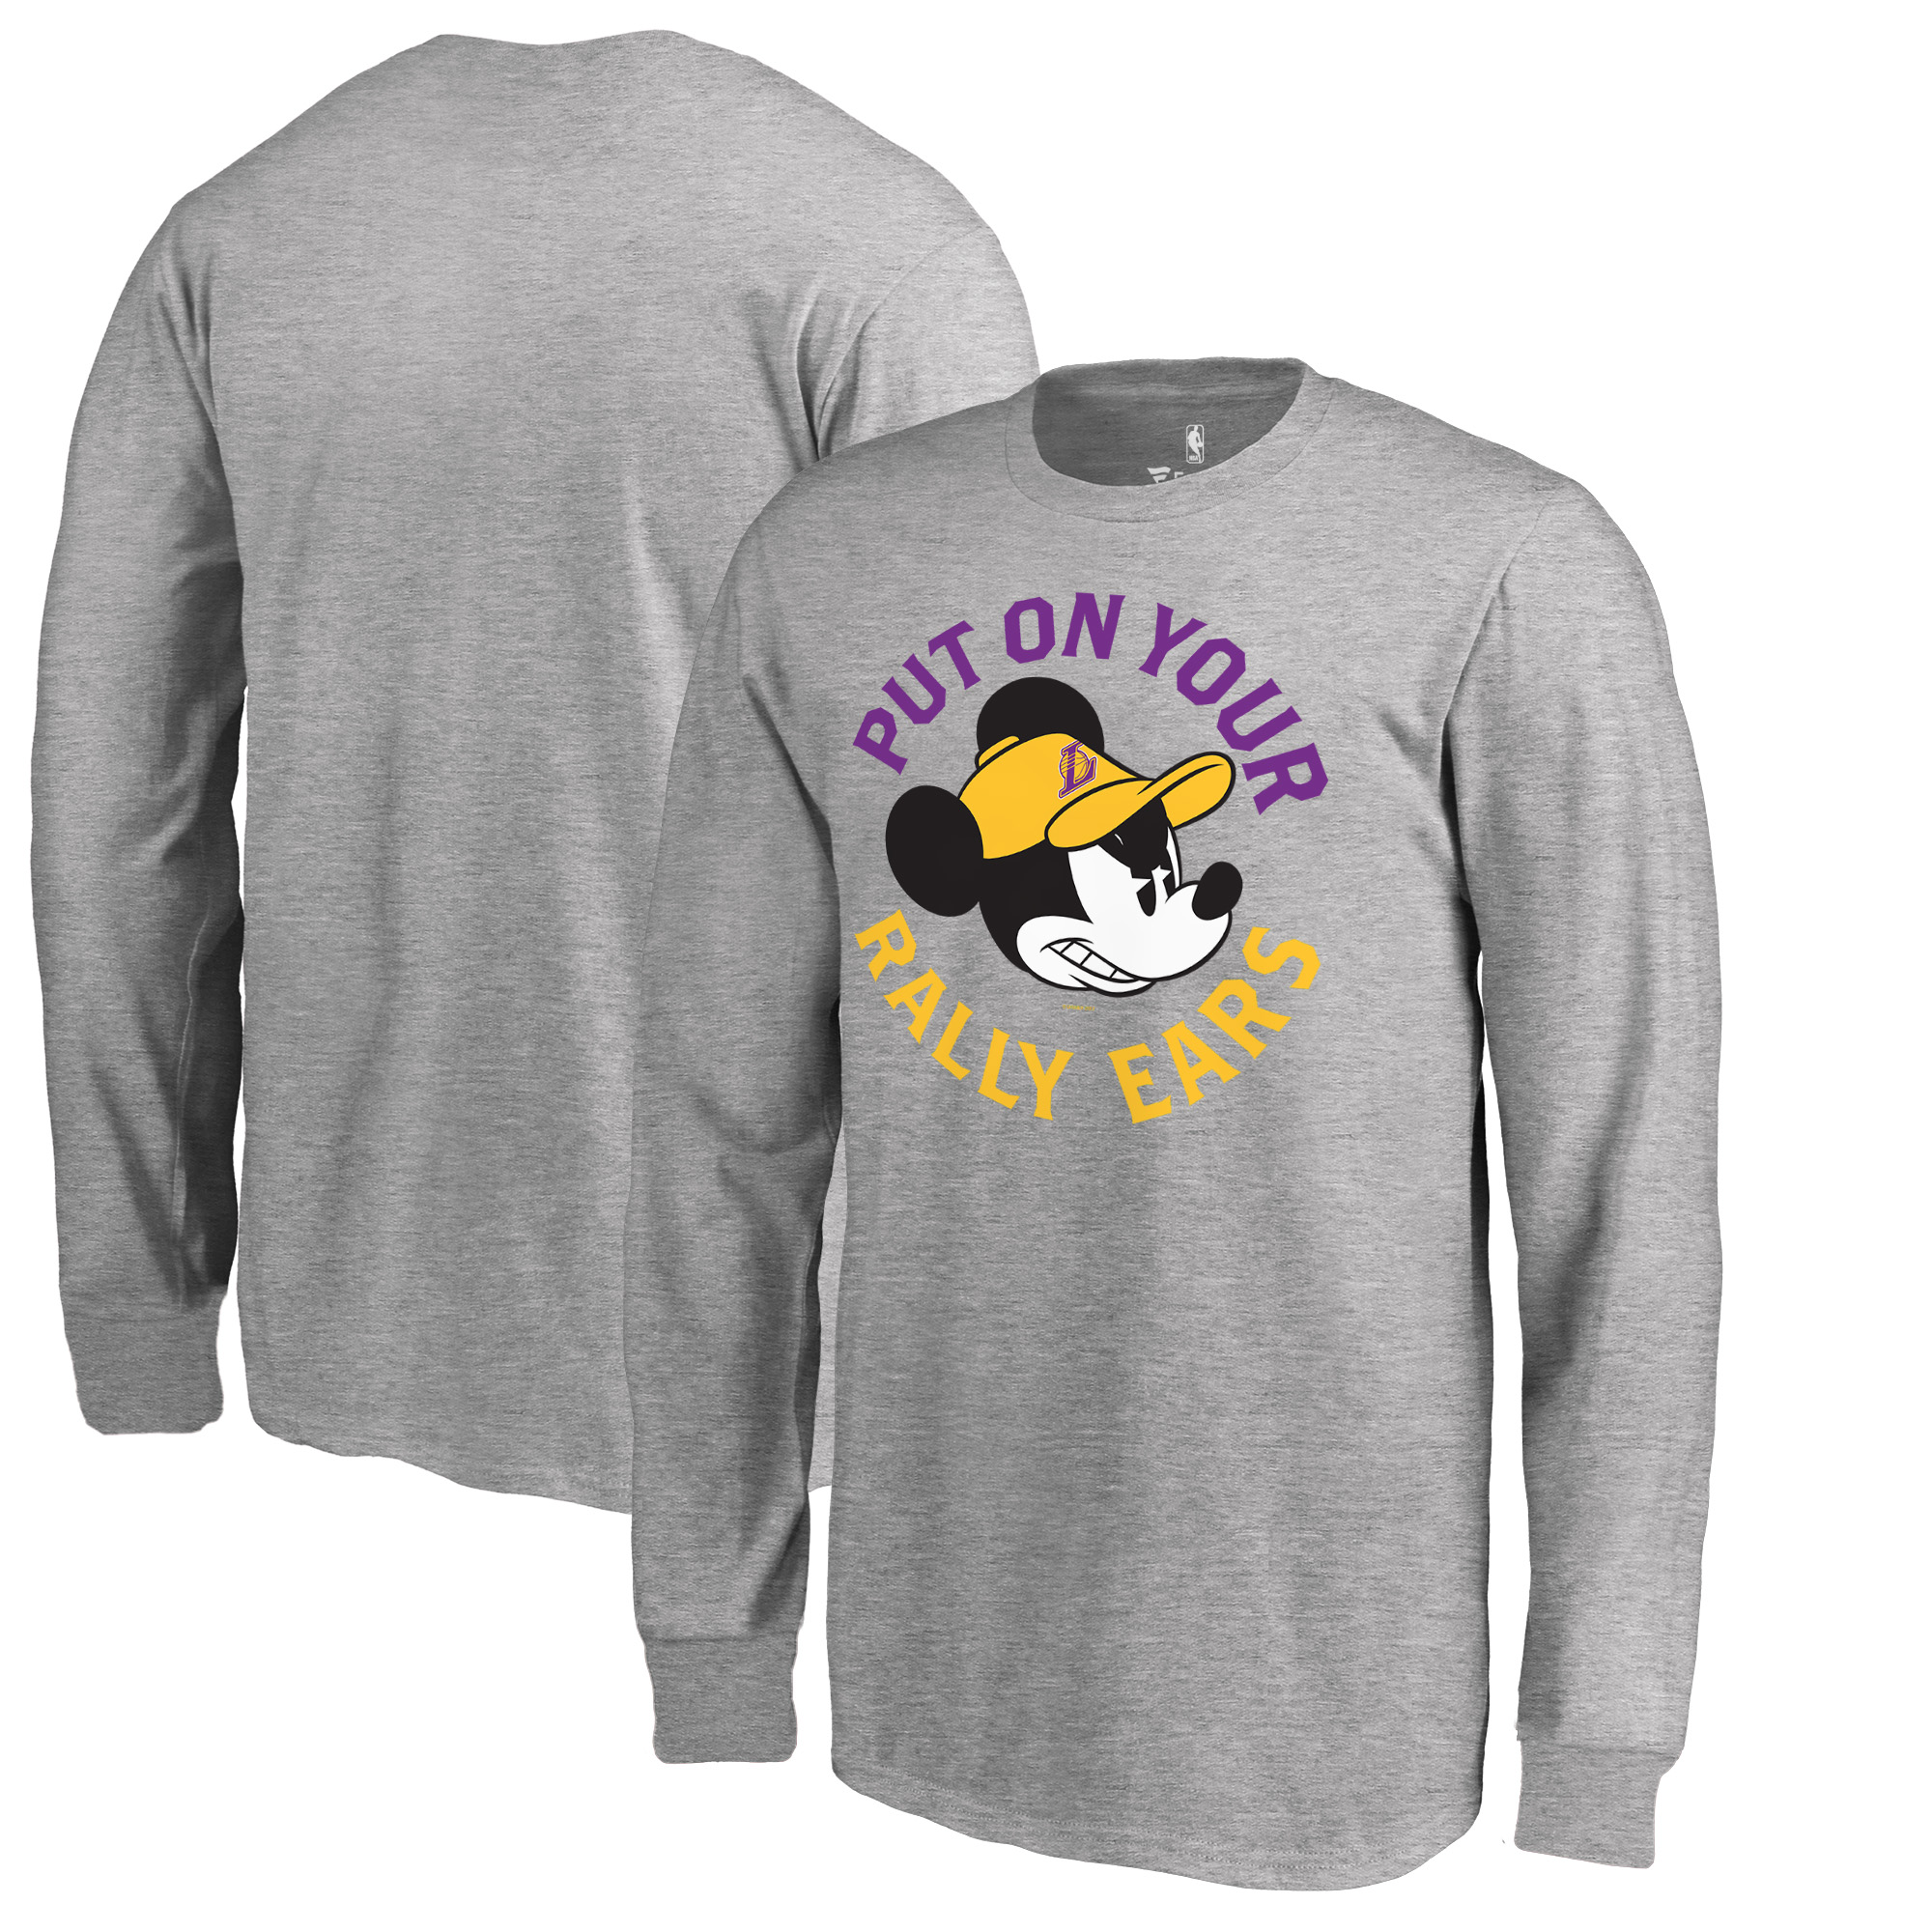 Los Angeles Lakers Fanatics Branded Youth Disney Rally Ears Long Sleeve T-Shirt - Ash